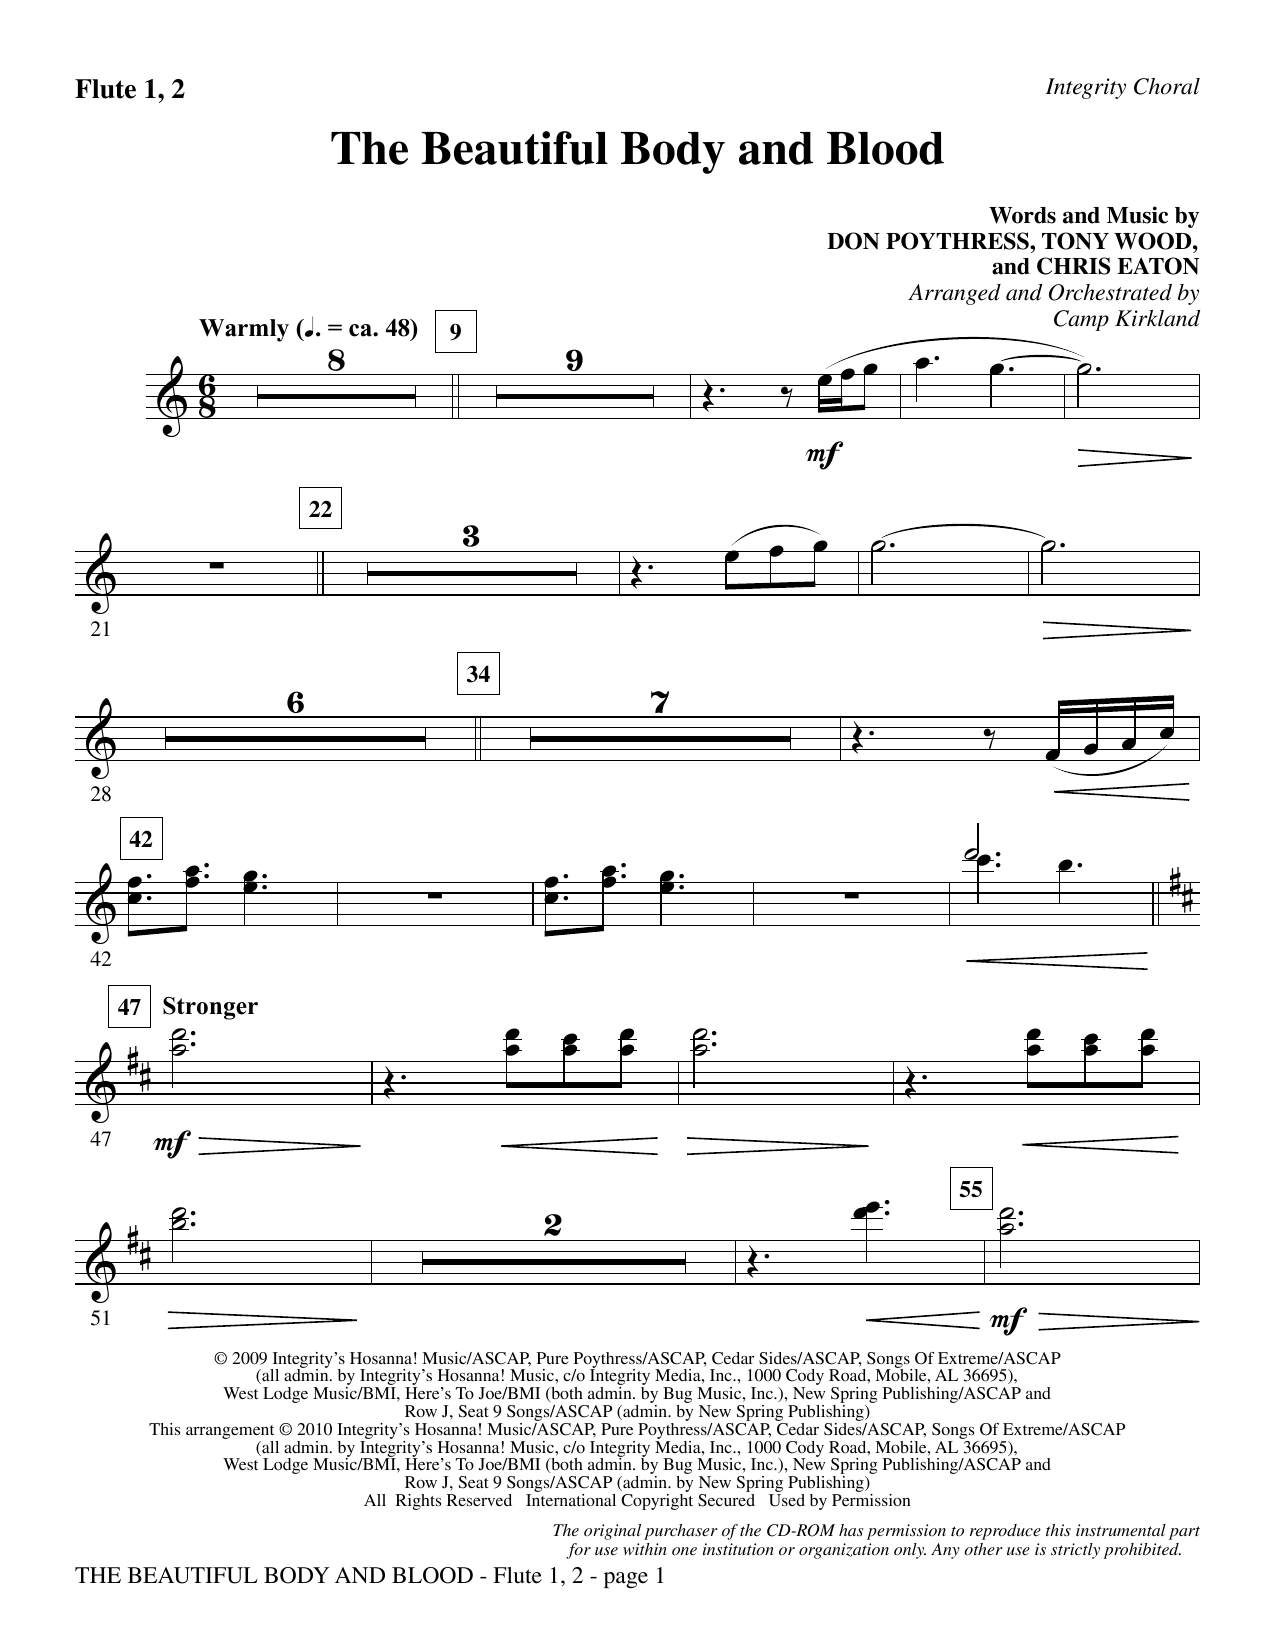 The Beautiful Body And Blood - Flute 1 & 2 sheet music